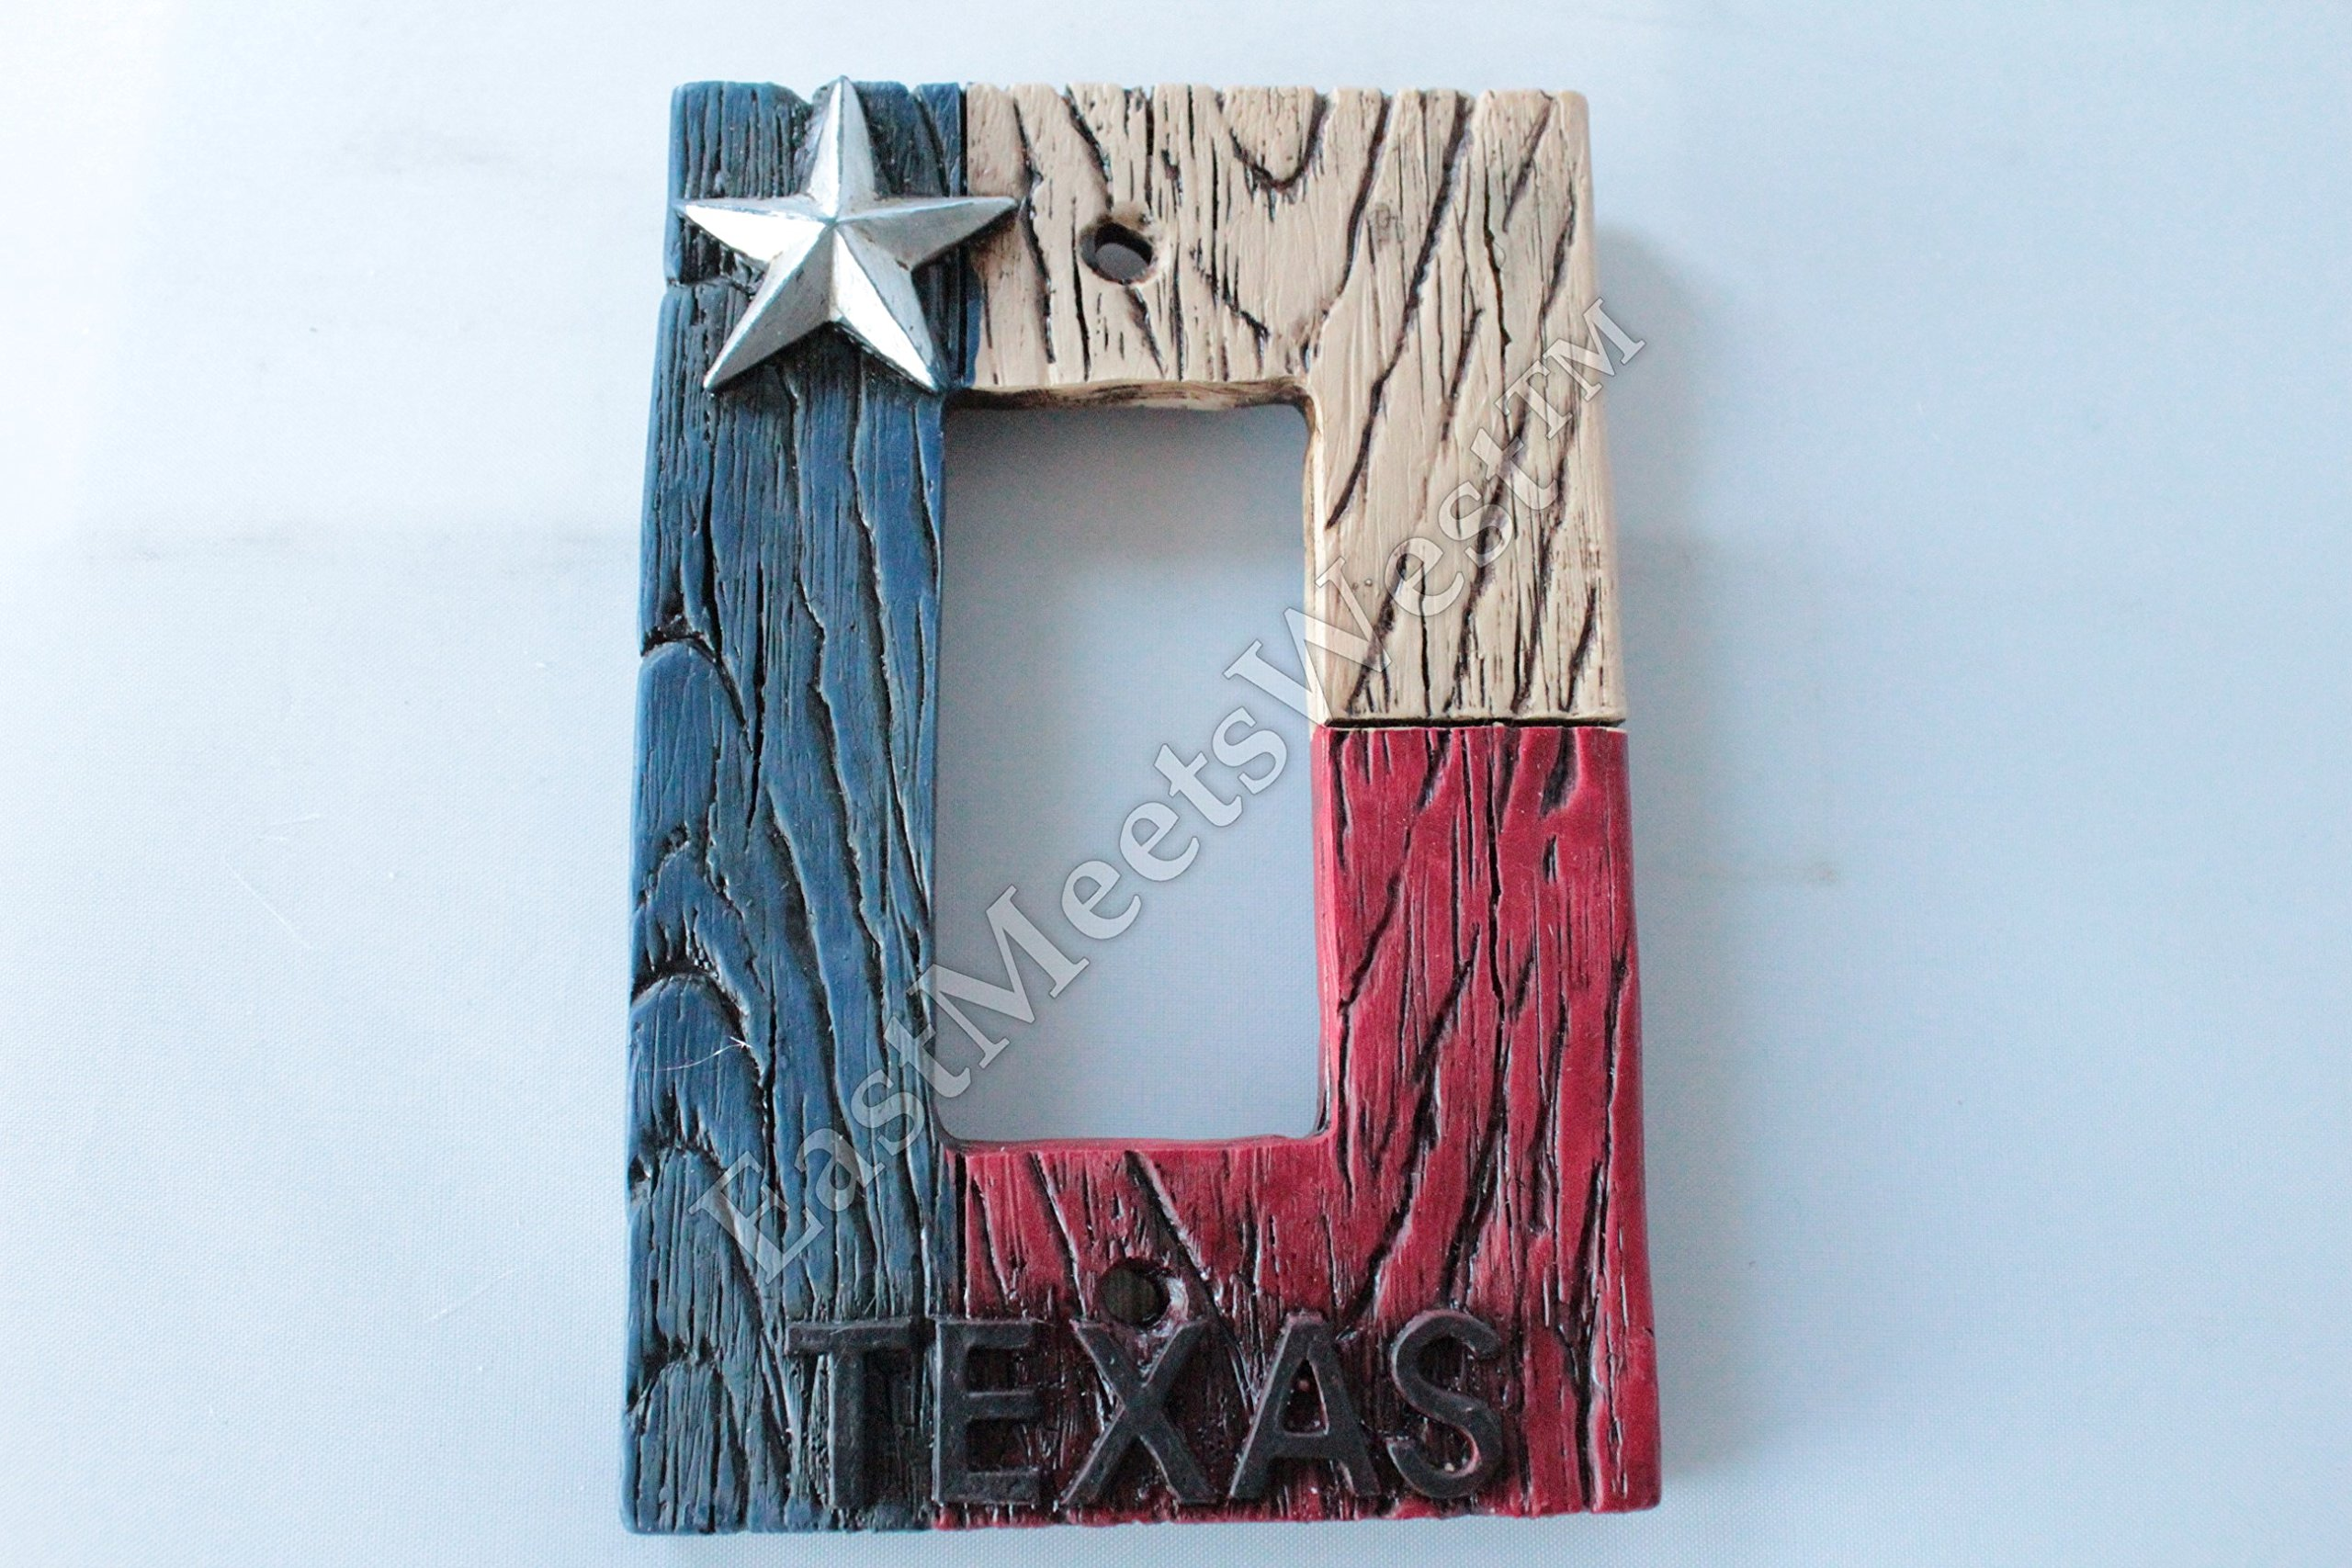 Western Cowboy Texas Flag Star Switch Plate Covers Electric Outlet Rustic Wood Look Decor (Single Rocker)